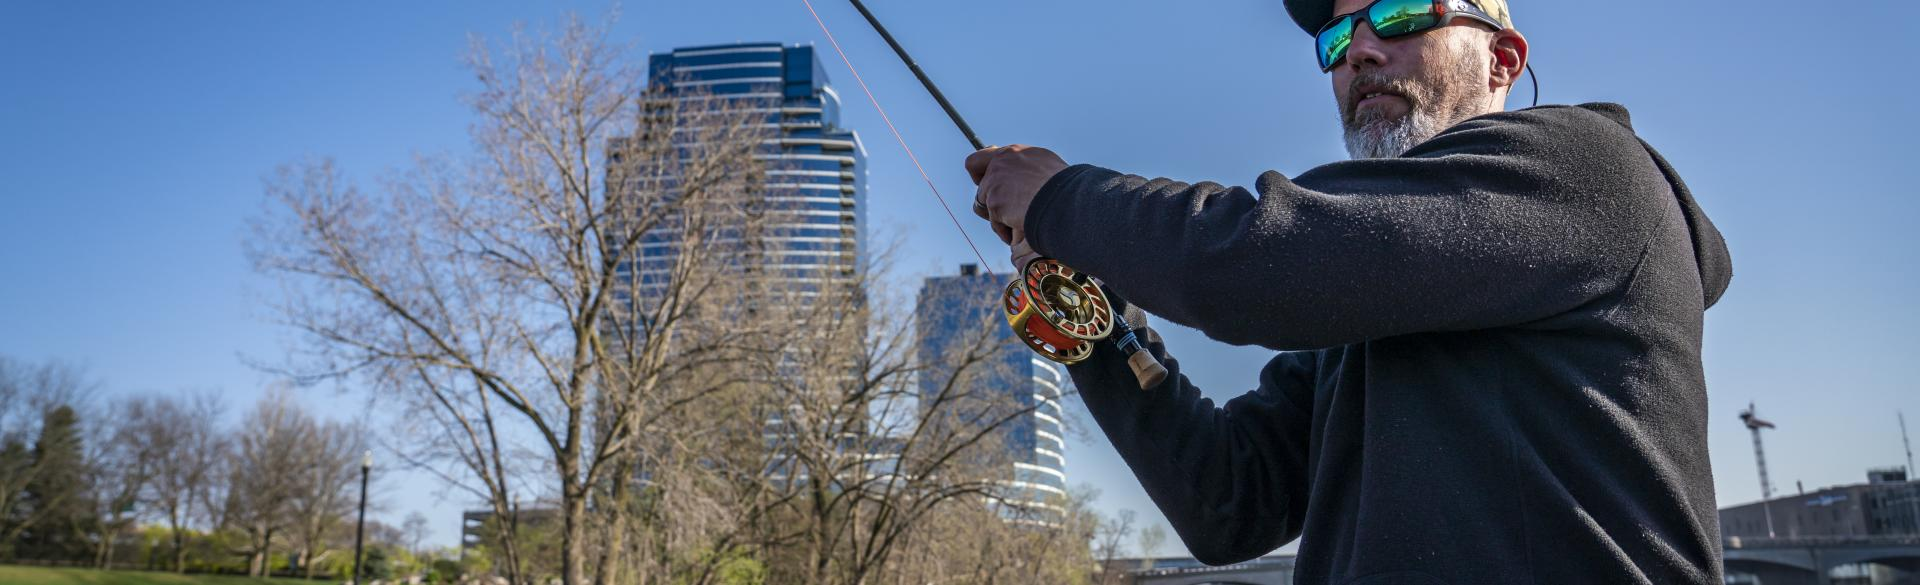 The Grand River is one of several great places to fish in Kent County.